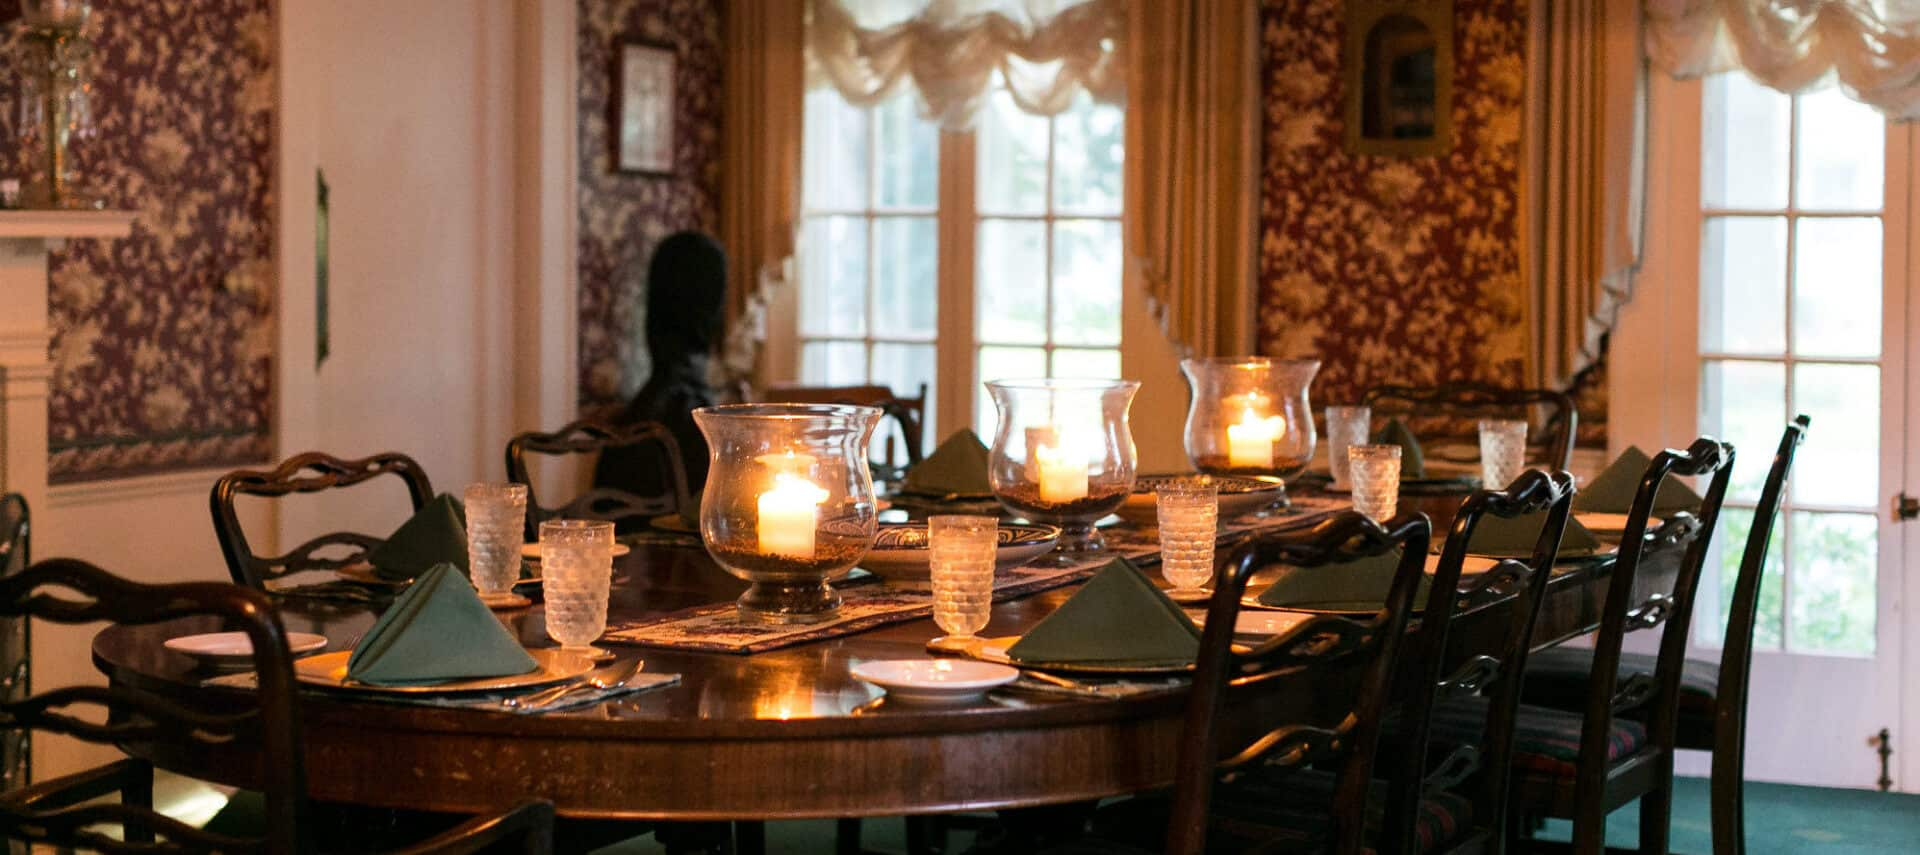 Elegant dining room containing a long table set for dinner with hurricane lamps.